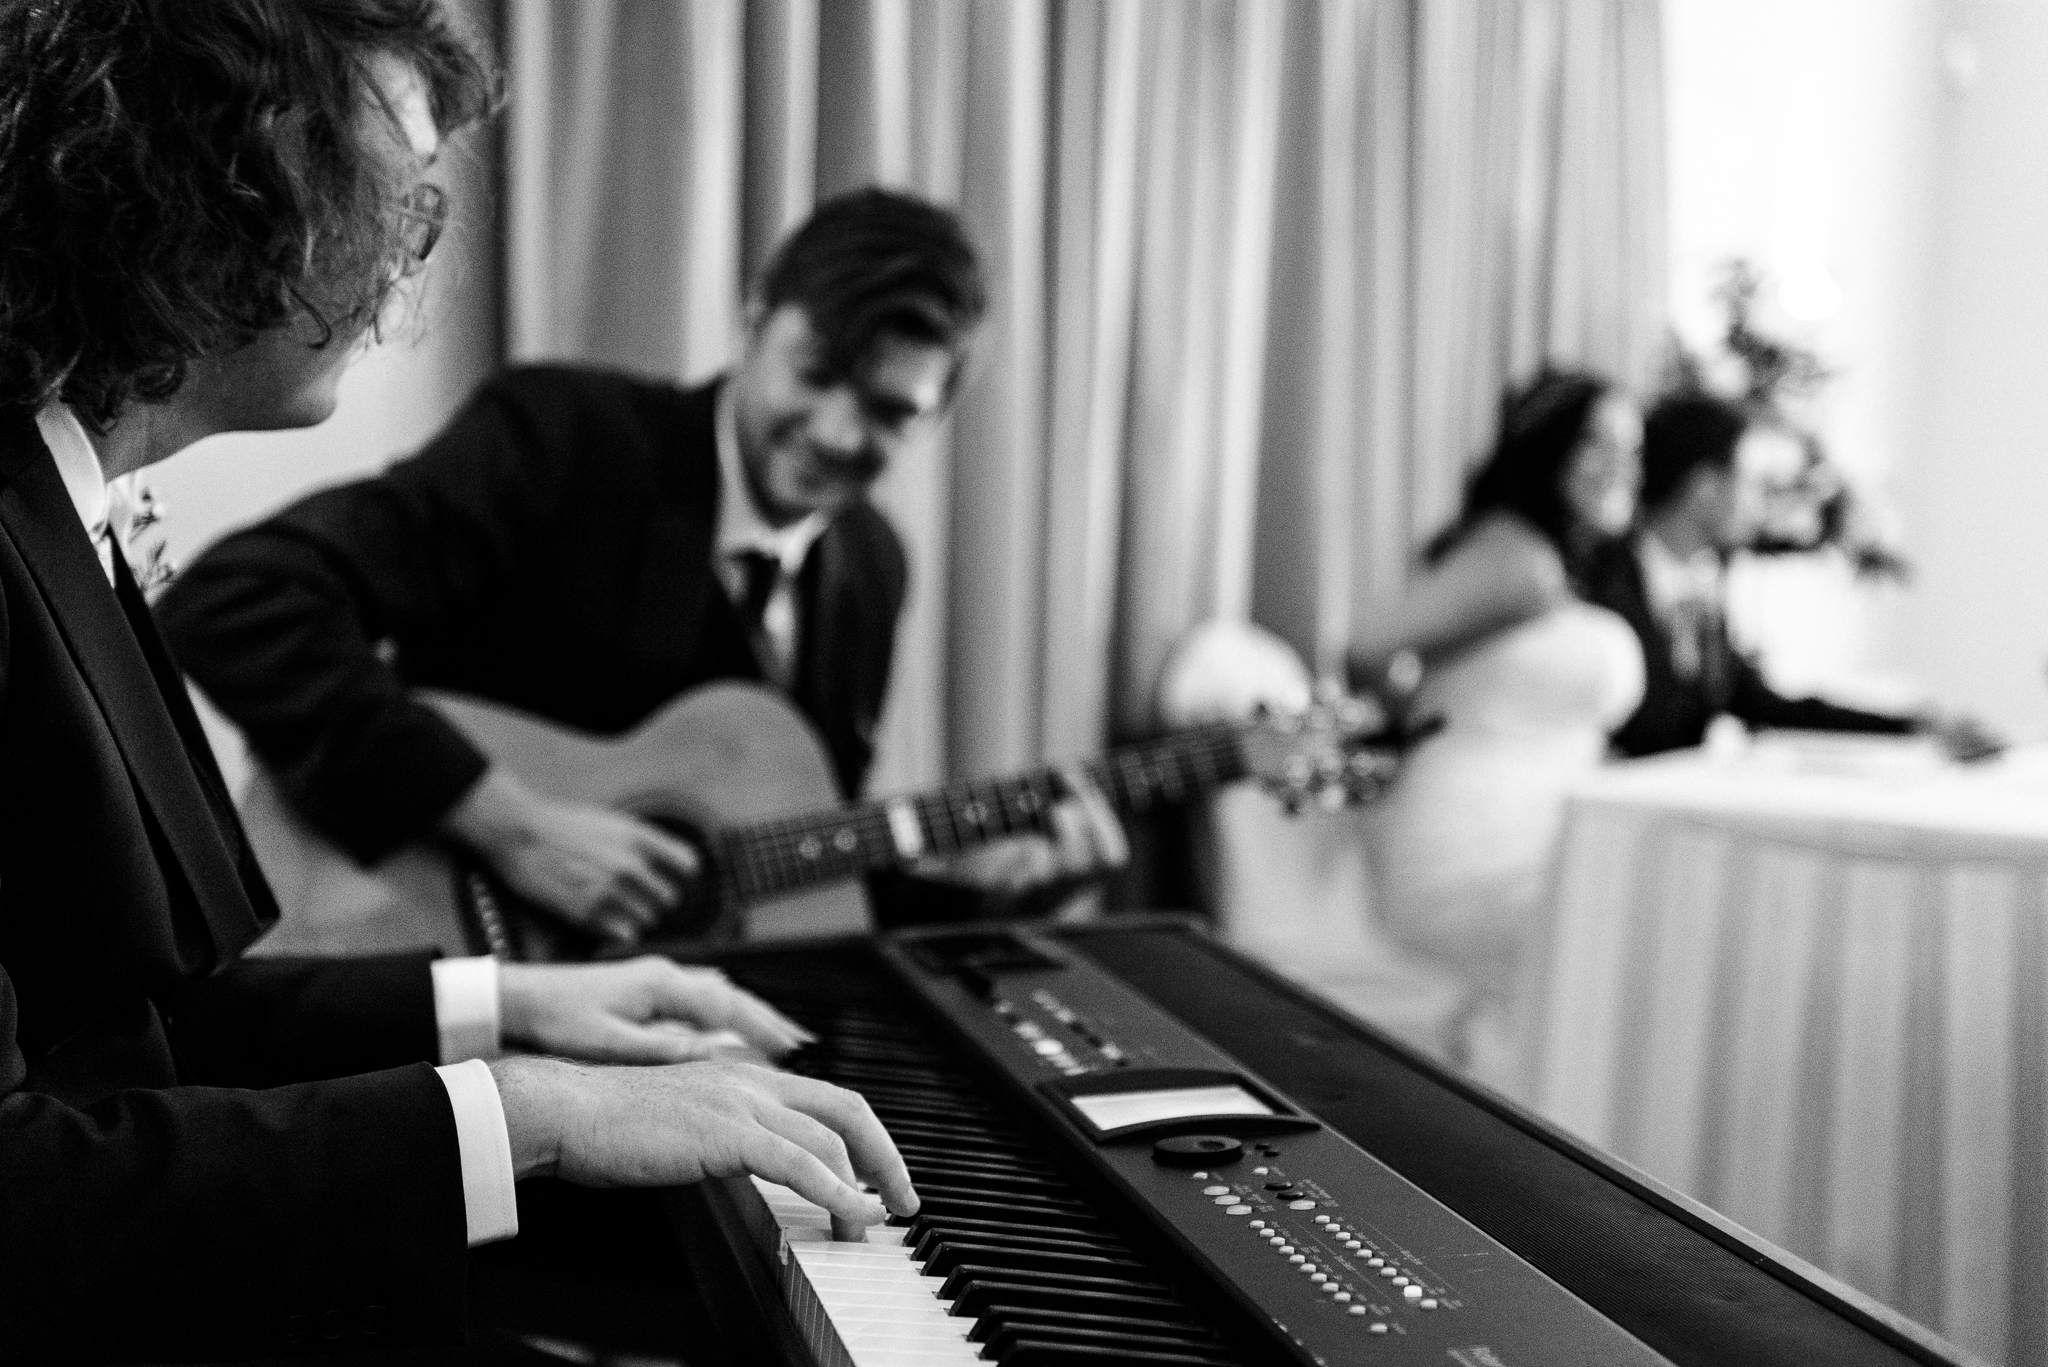 Relaxed Summer Wedding at The Manor, Cheadle Guitarist Musicians Vinyl-25.jpg